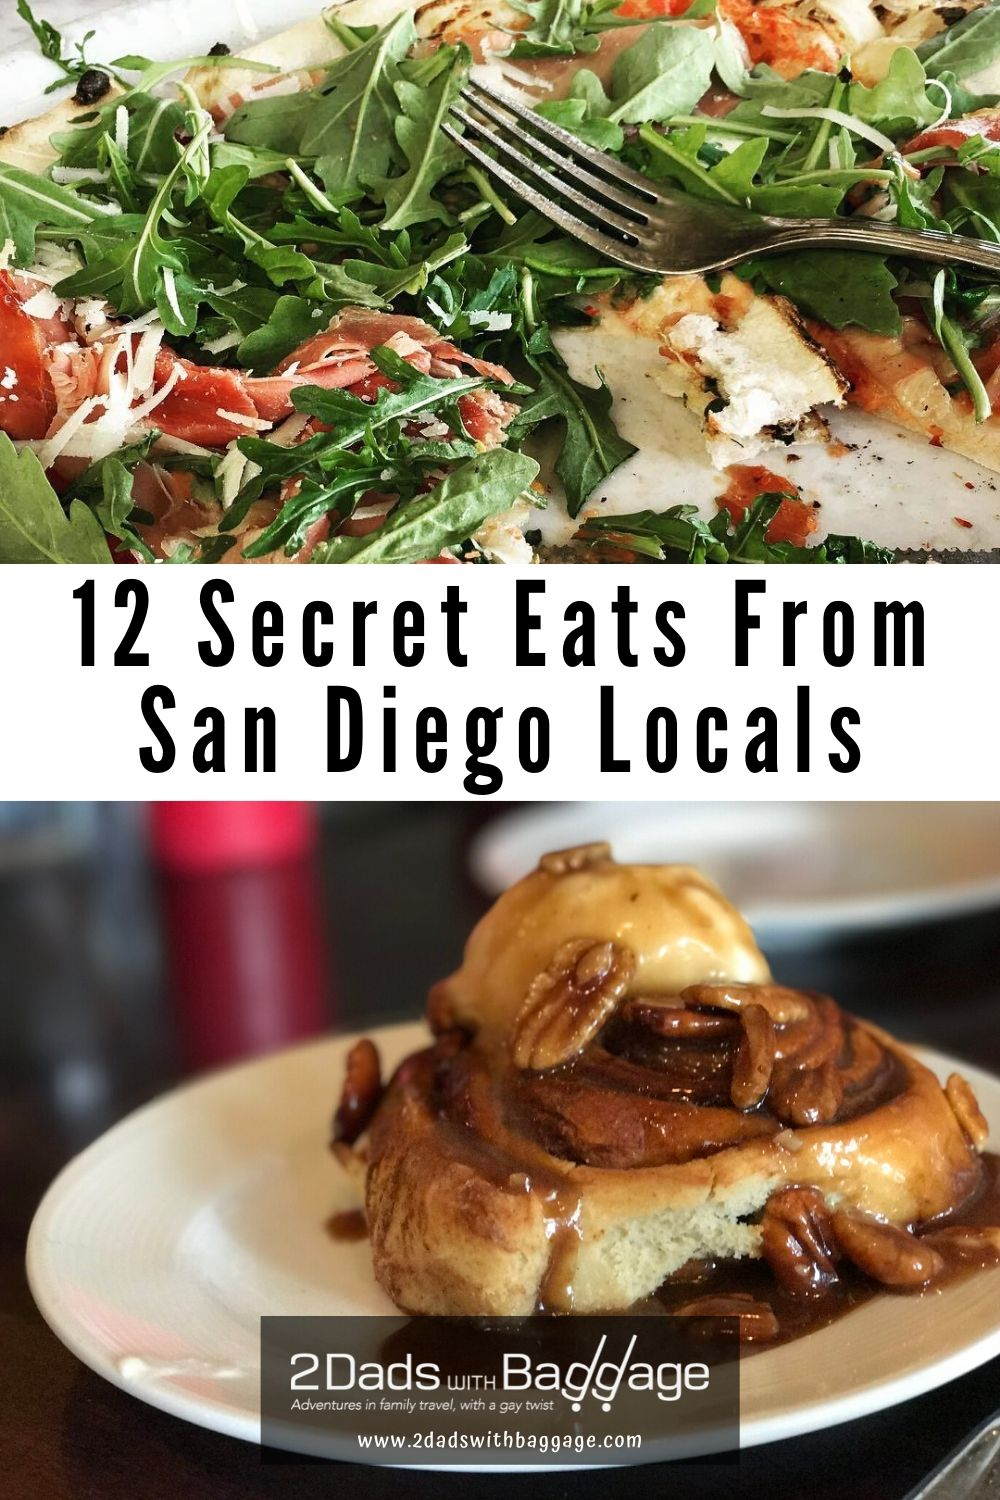 12 Secret Eats from San Diego Locals